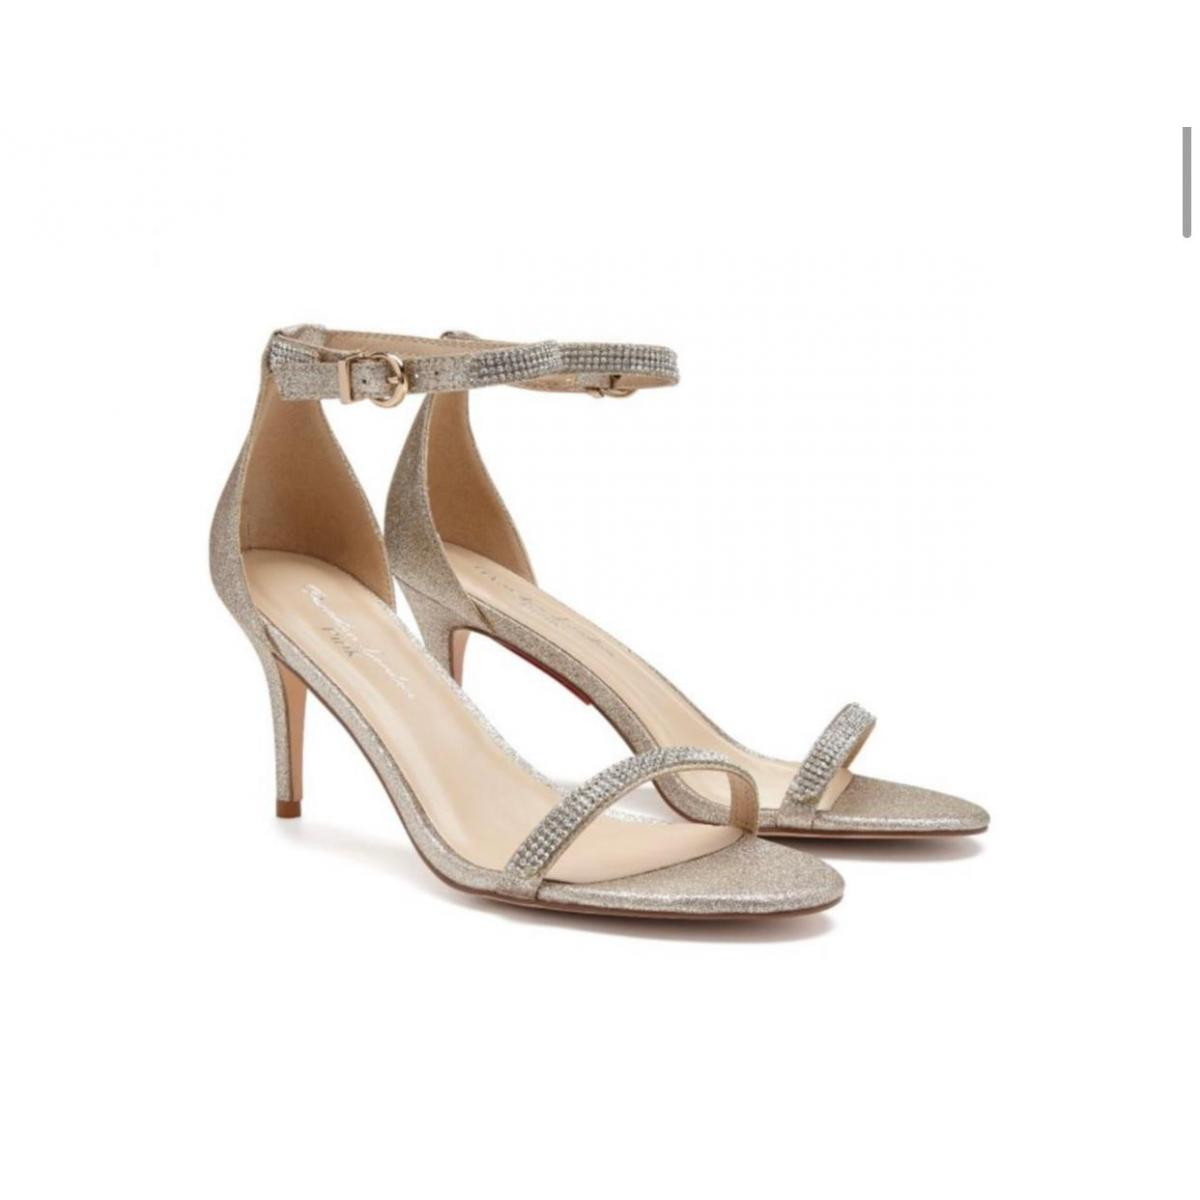 Pink Paradox Star - Nude Shimmer High Heel Barely There Sandal 2